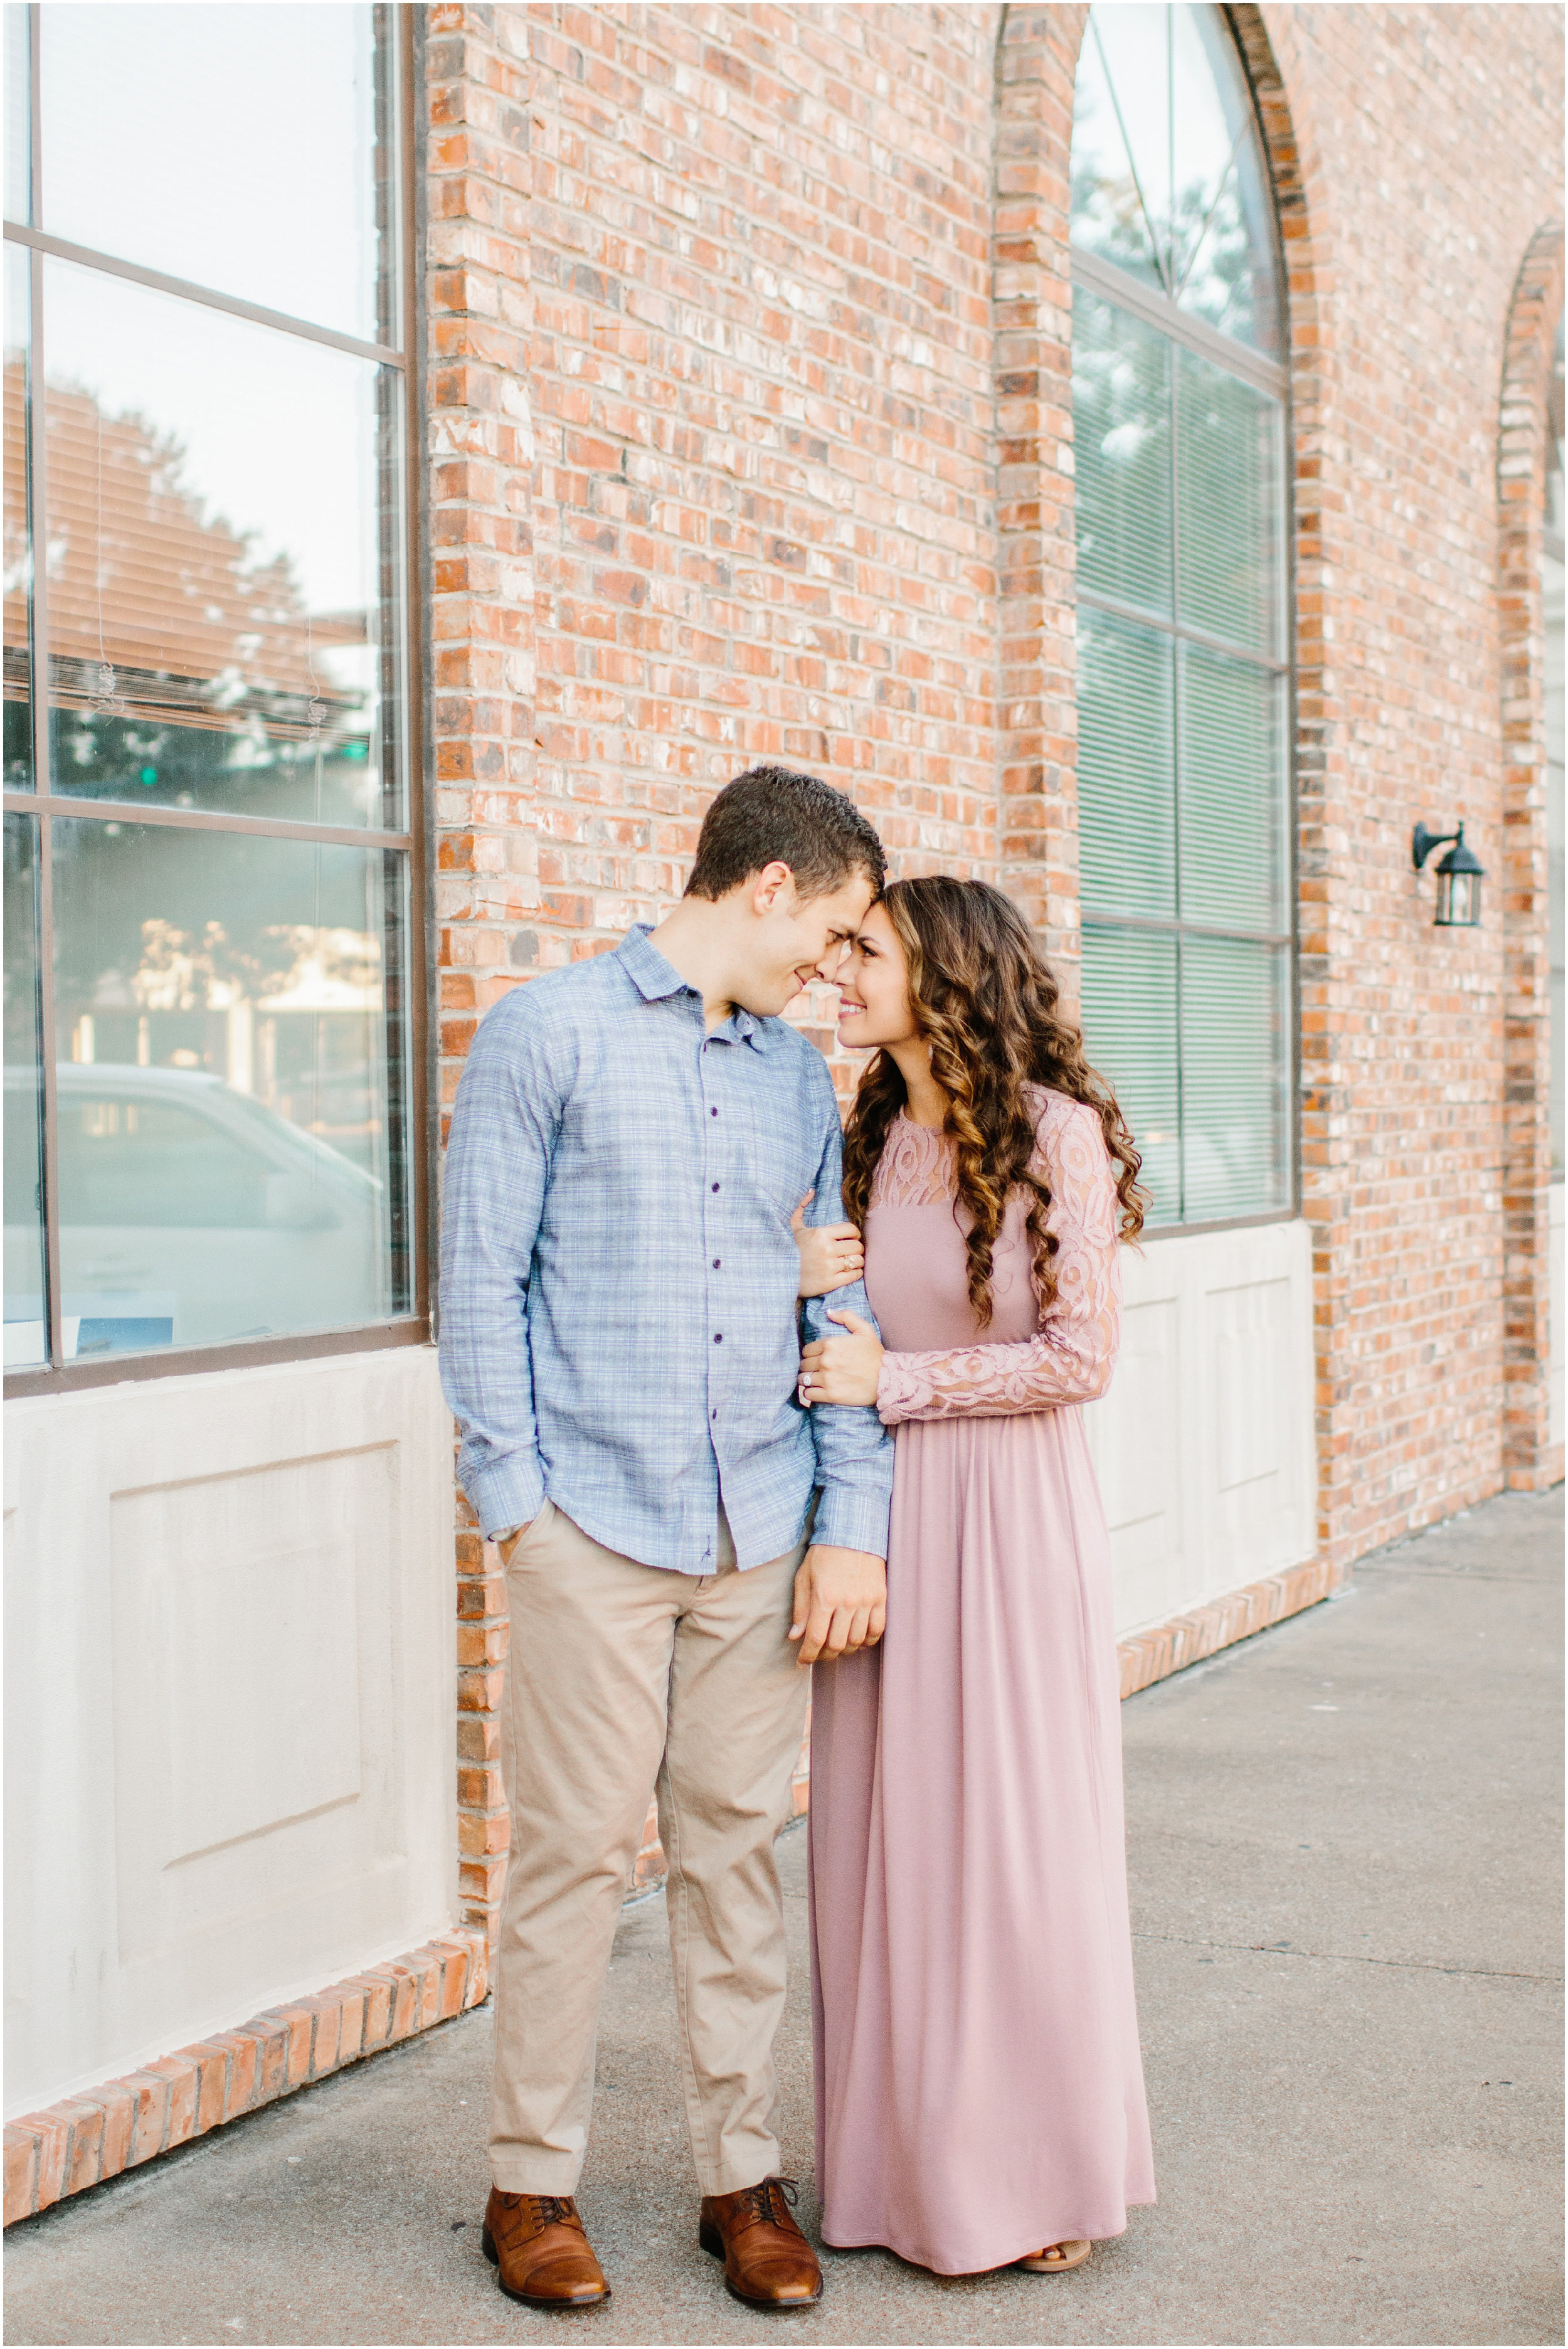 Downtown_Waco_Engagement_Session-64.jpg